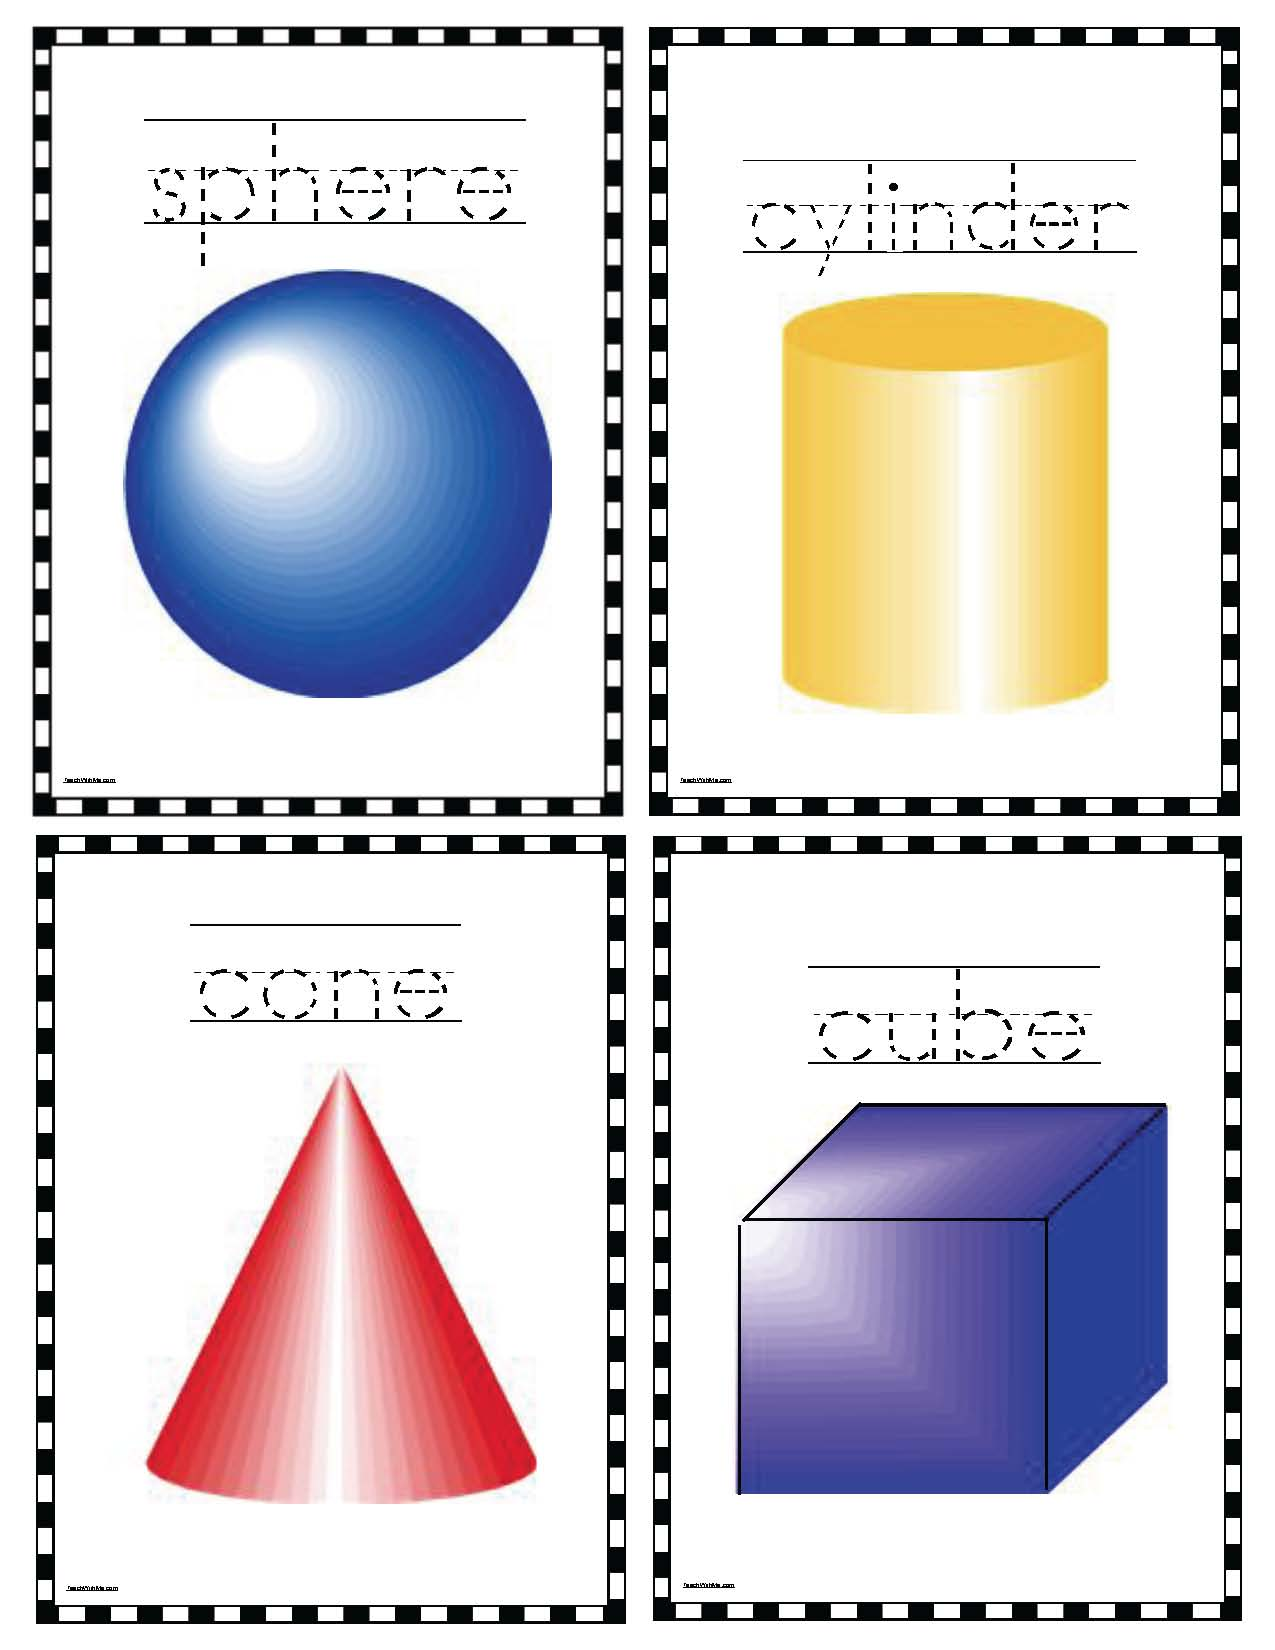 3D posters shpere cube cone cylinder activities 3D shapes 3D shape activities 3D shape games